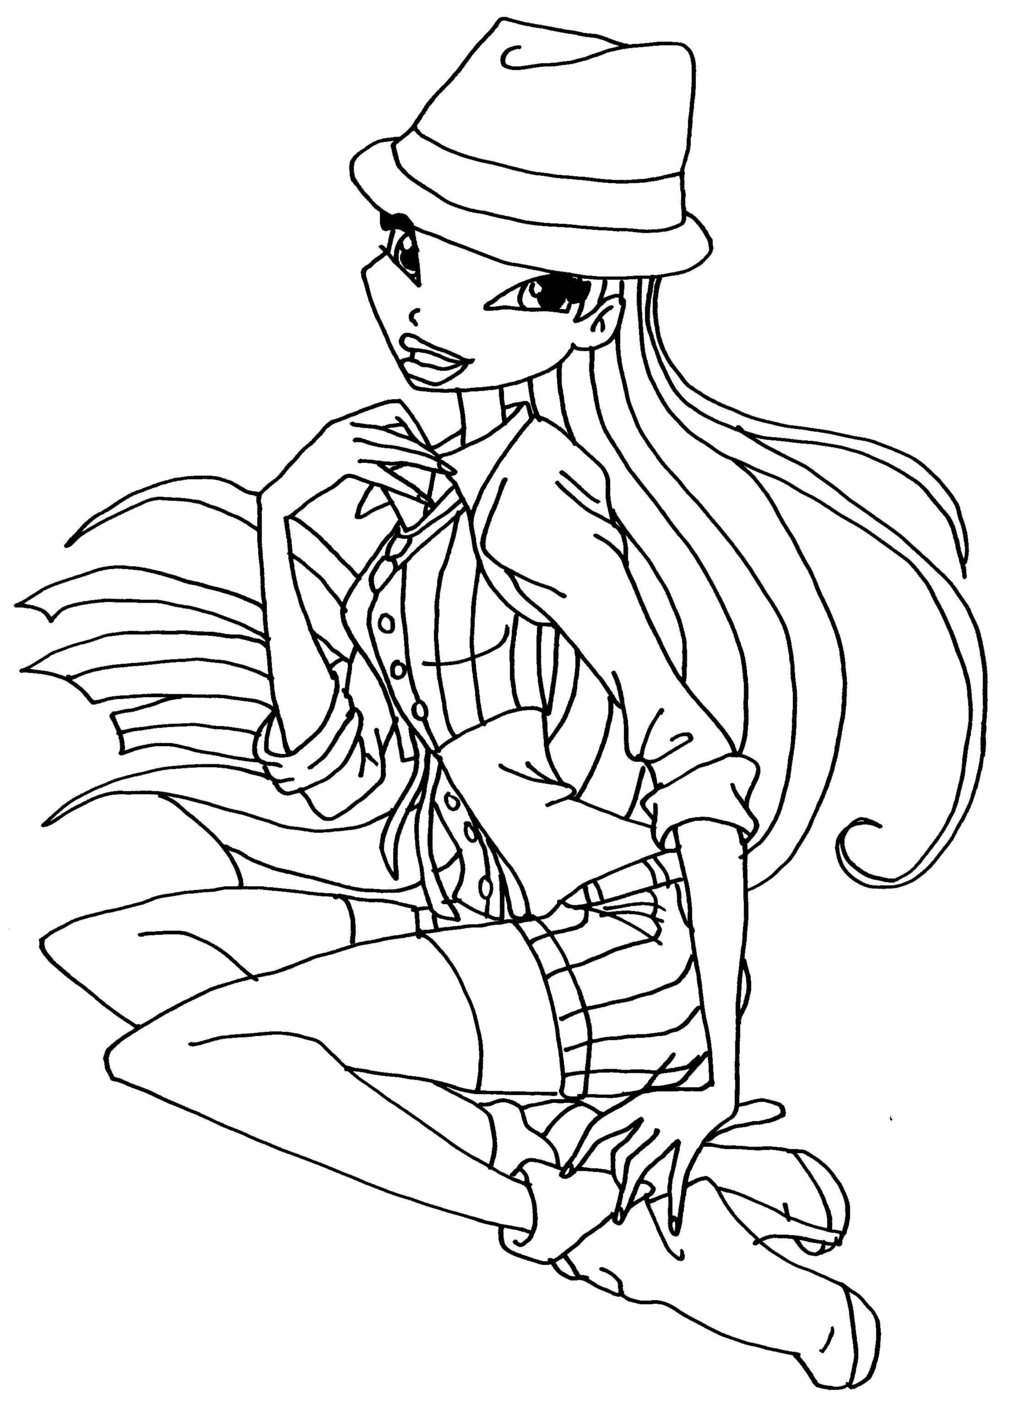 Winx Club Musa Coloring Pages at GetDrawings.com | Free ...